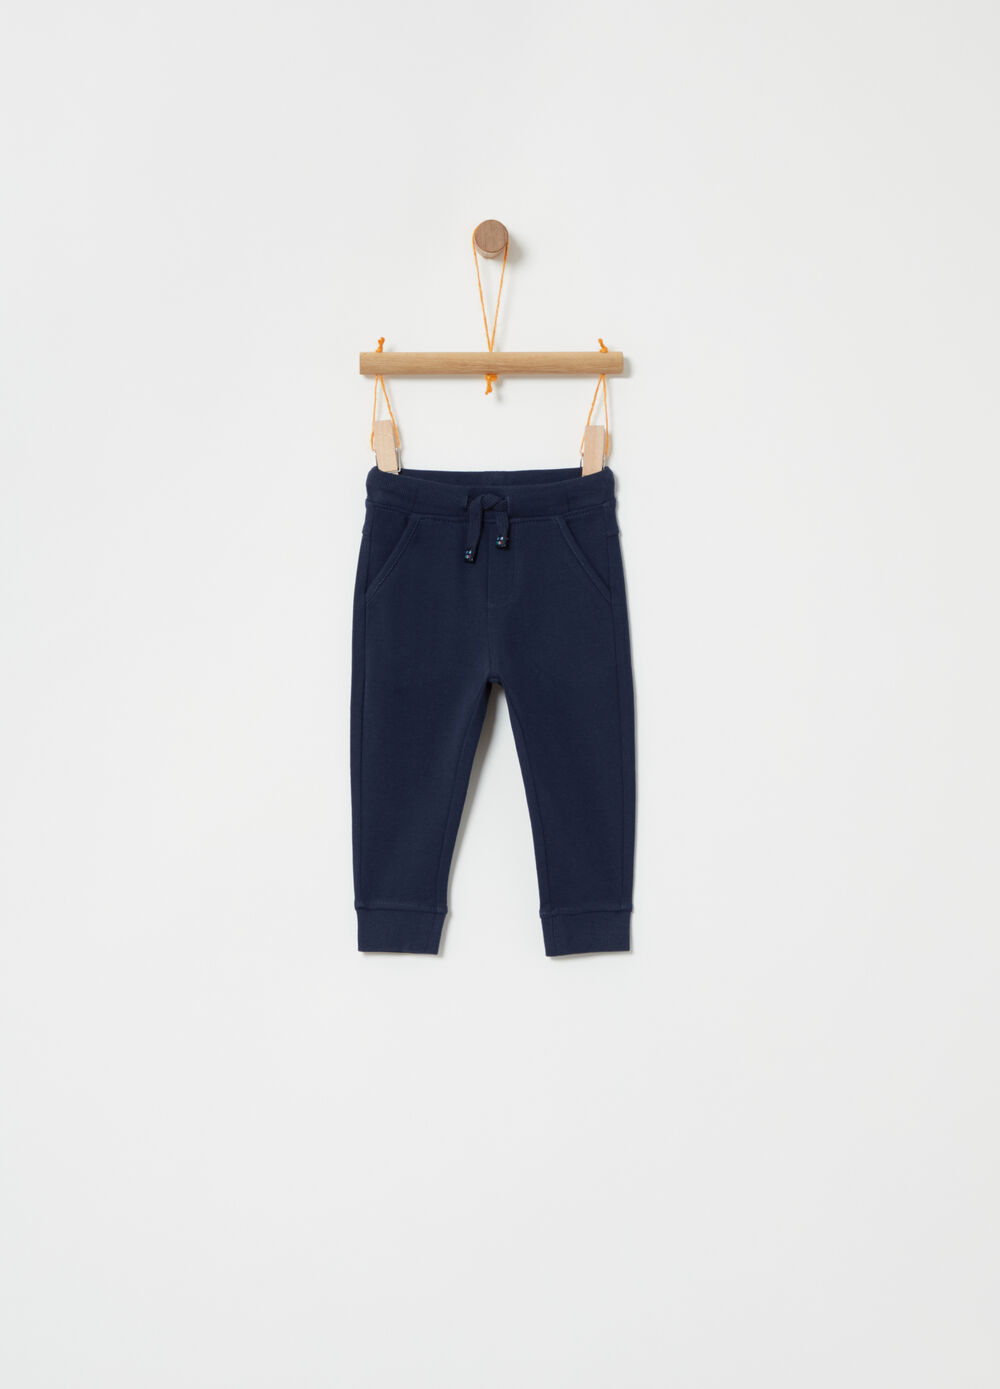 Cotton piquet trousers with drawstring